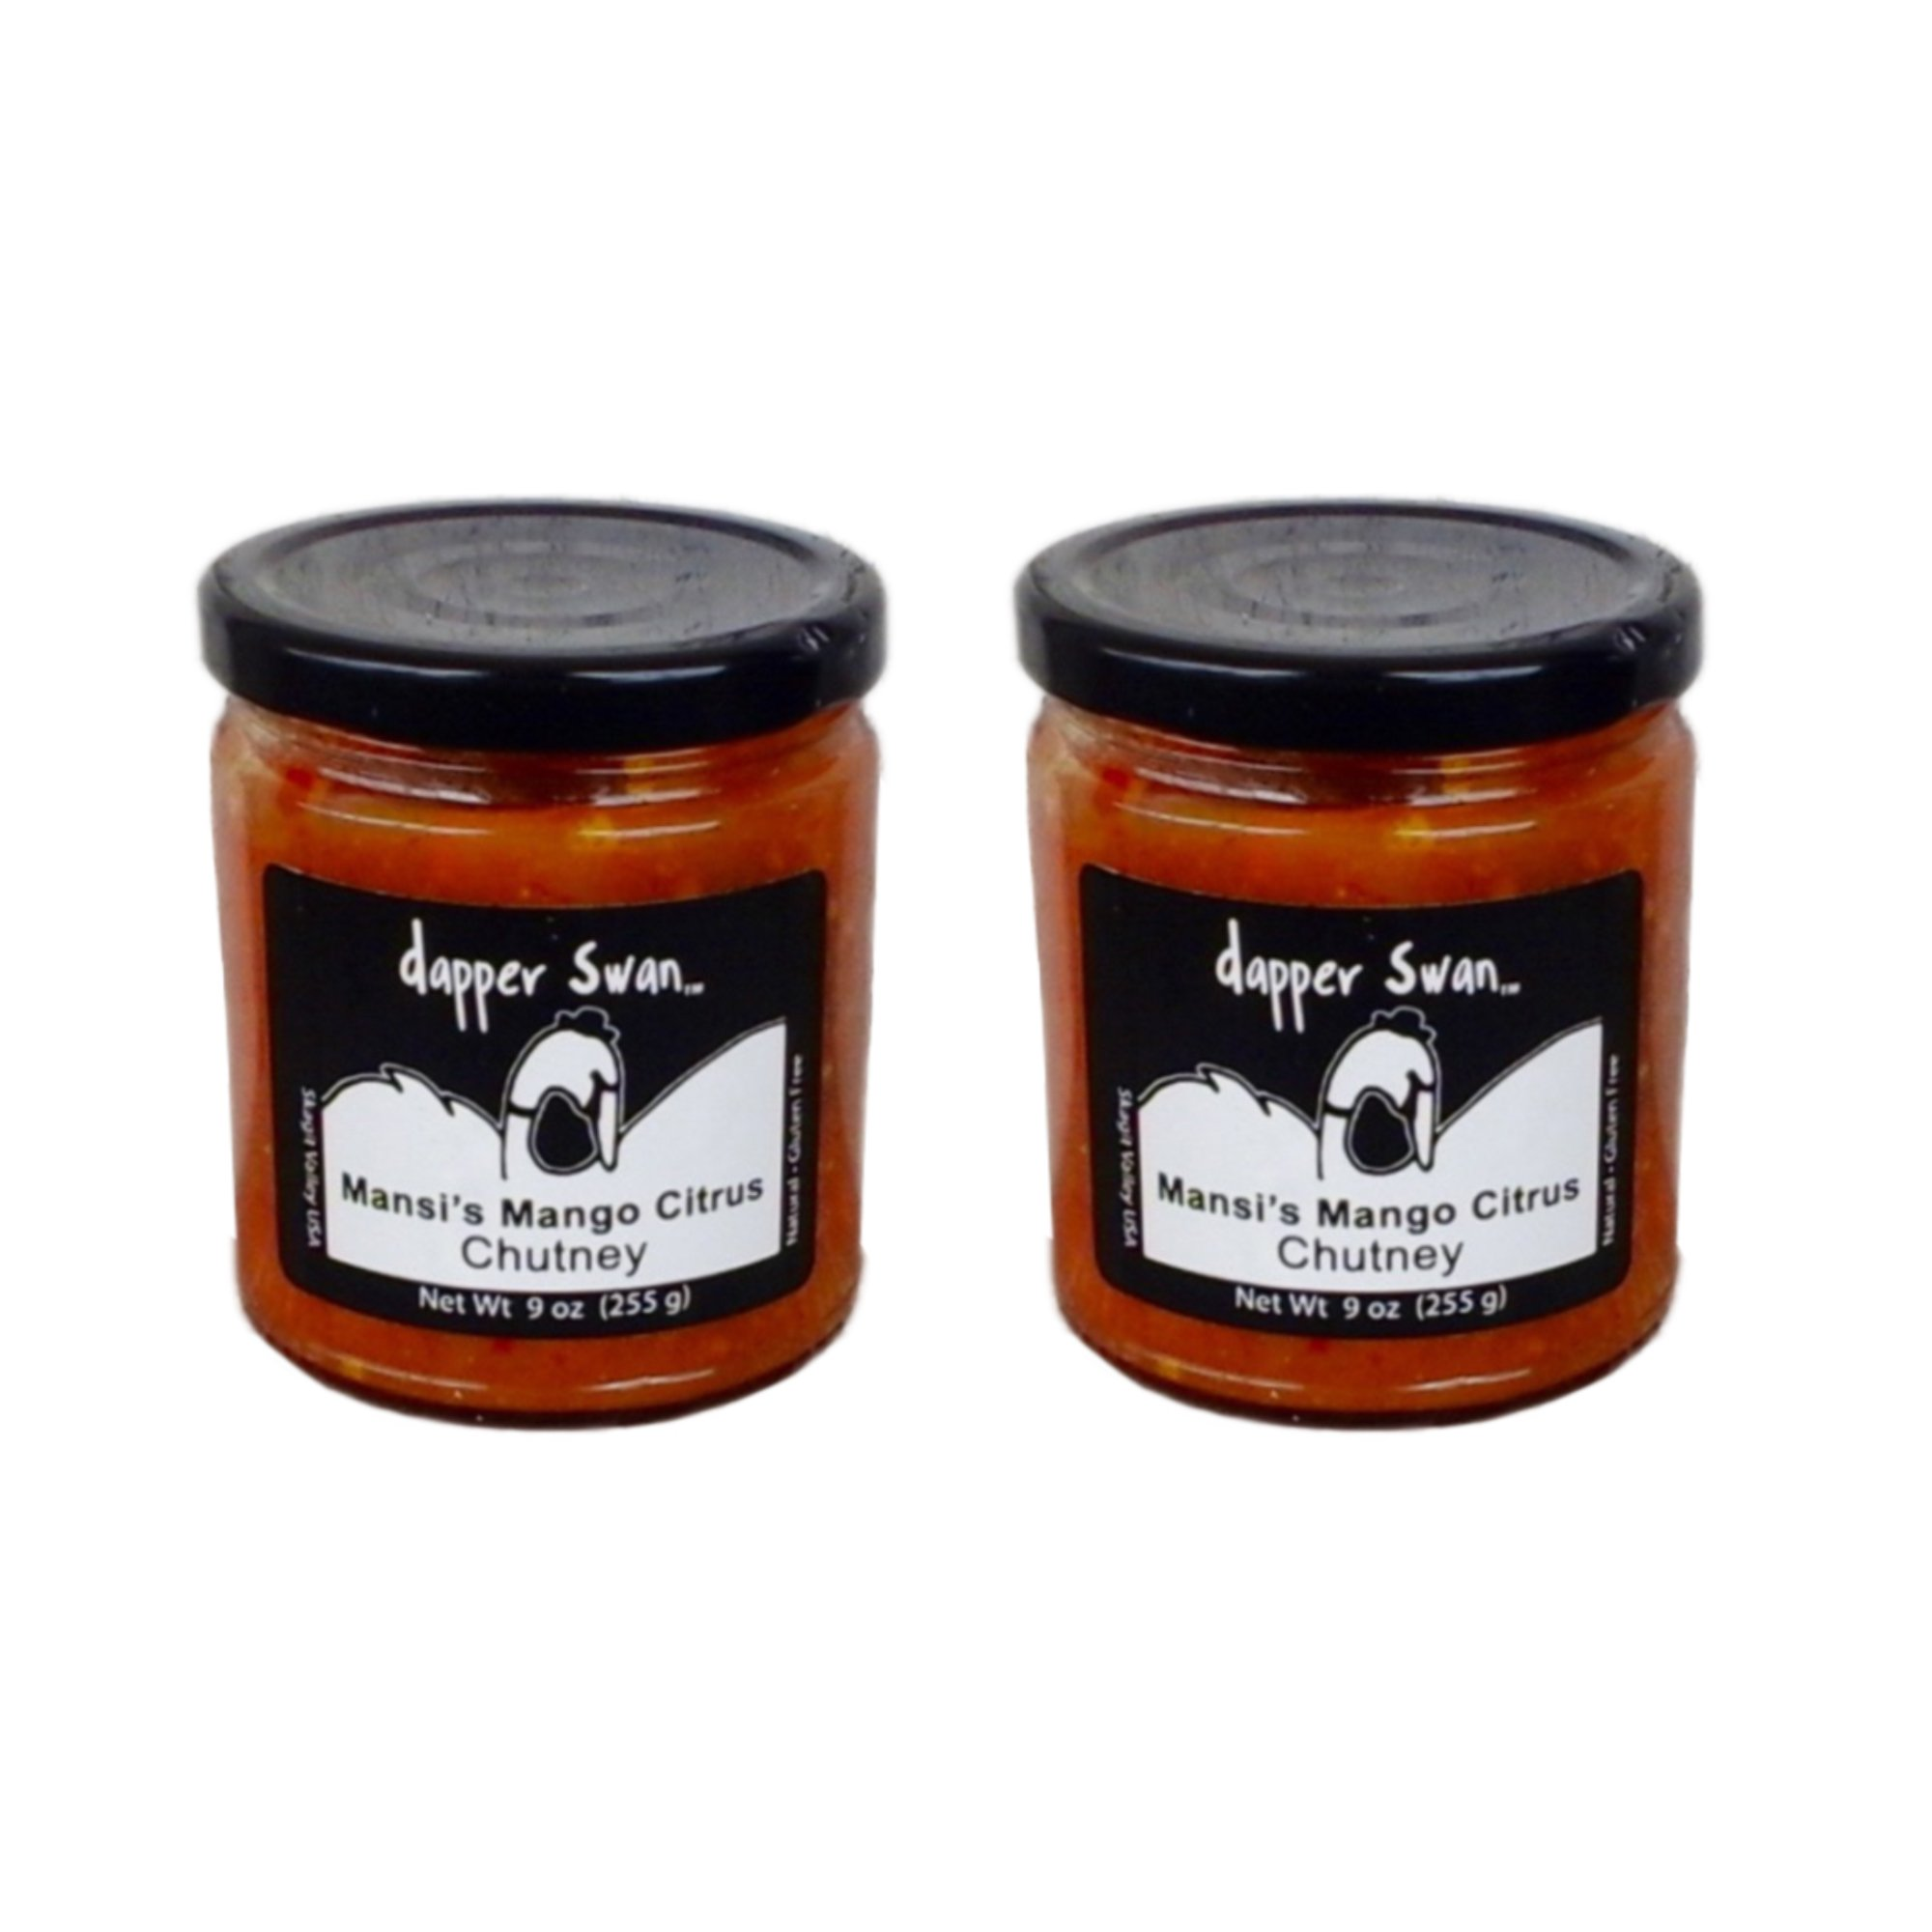 Mango Artisan Gourmet Chutney, Two 9-oz Jars - All Natural, GF, Vegan, No Fat, Made in USA